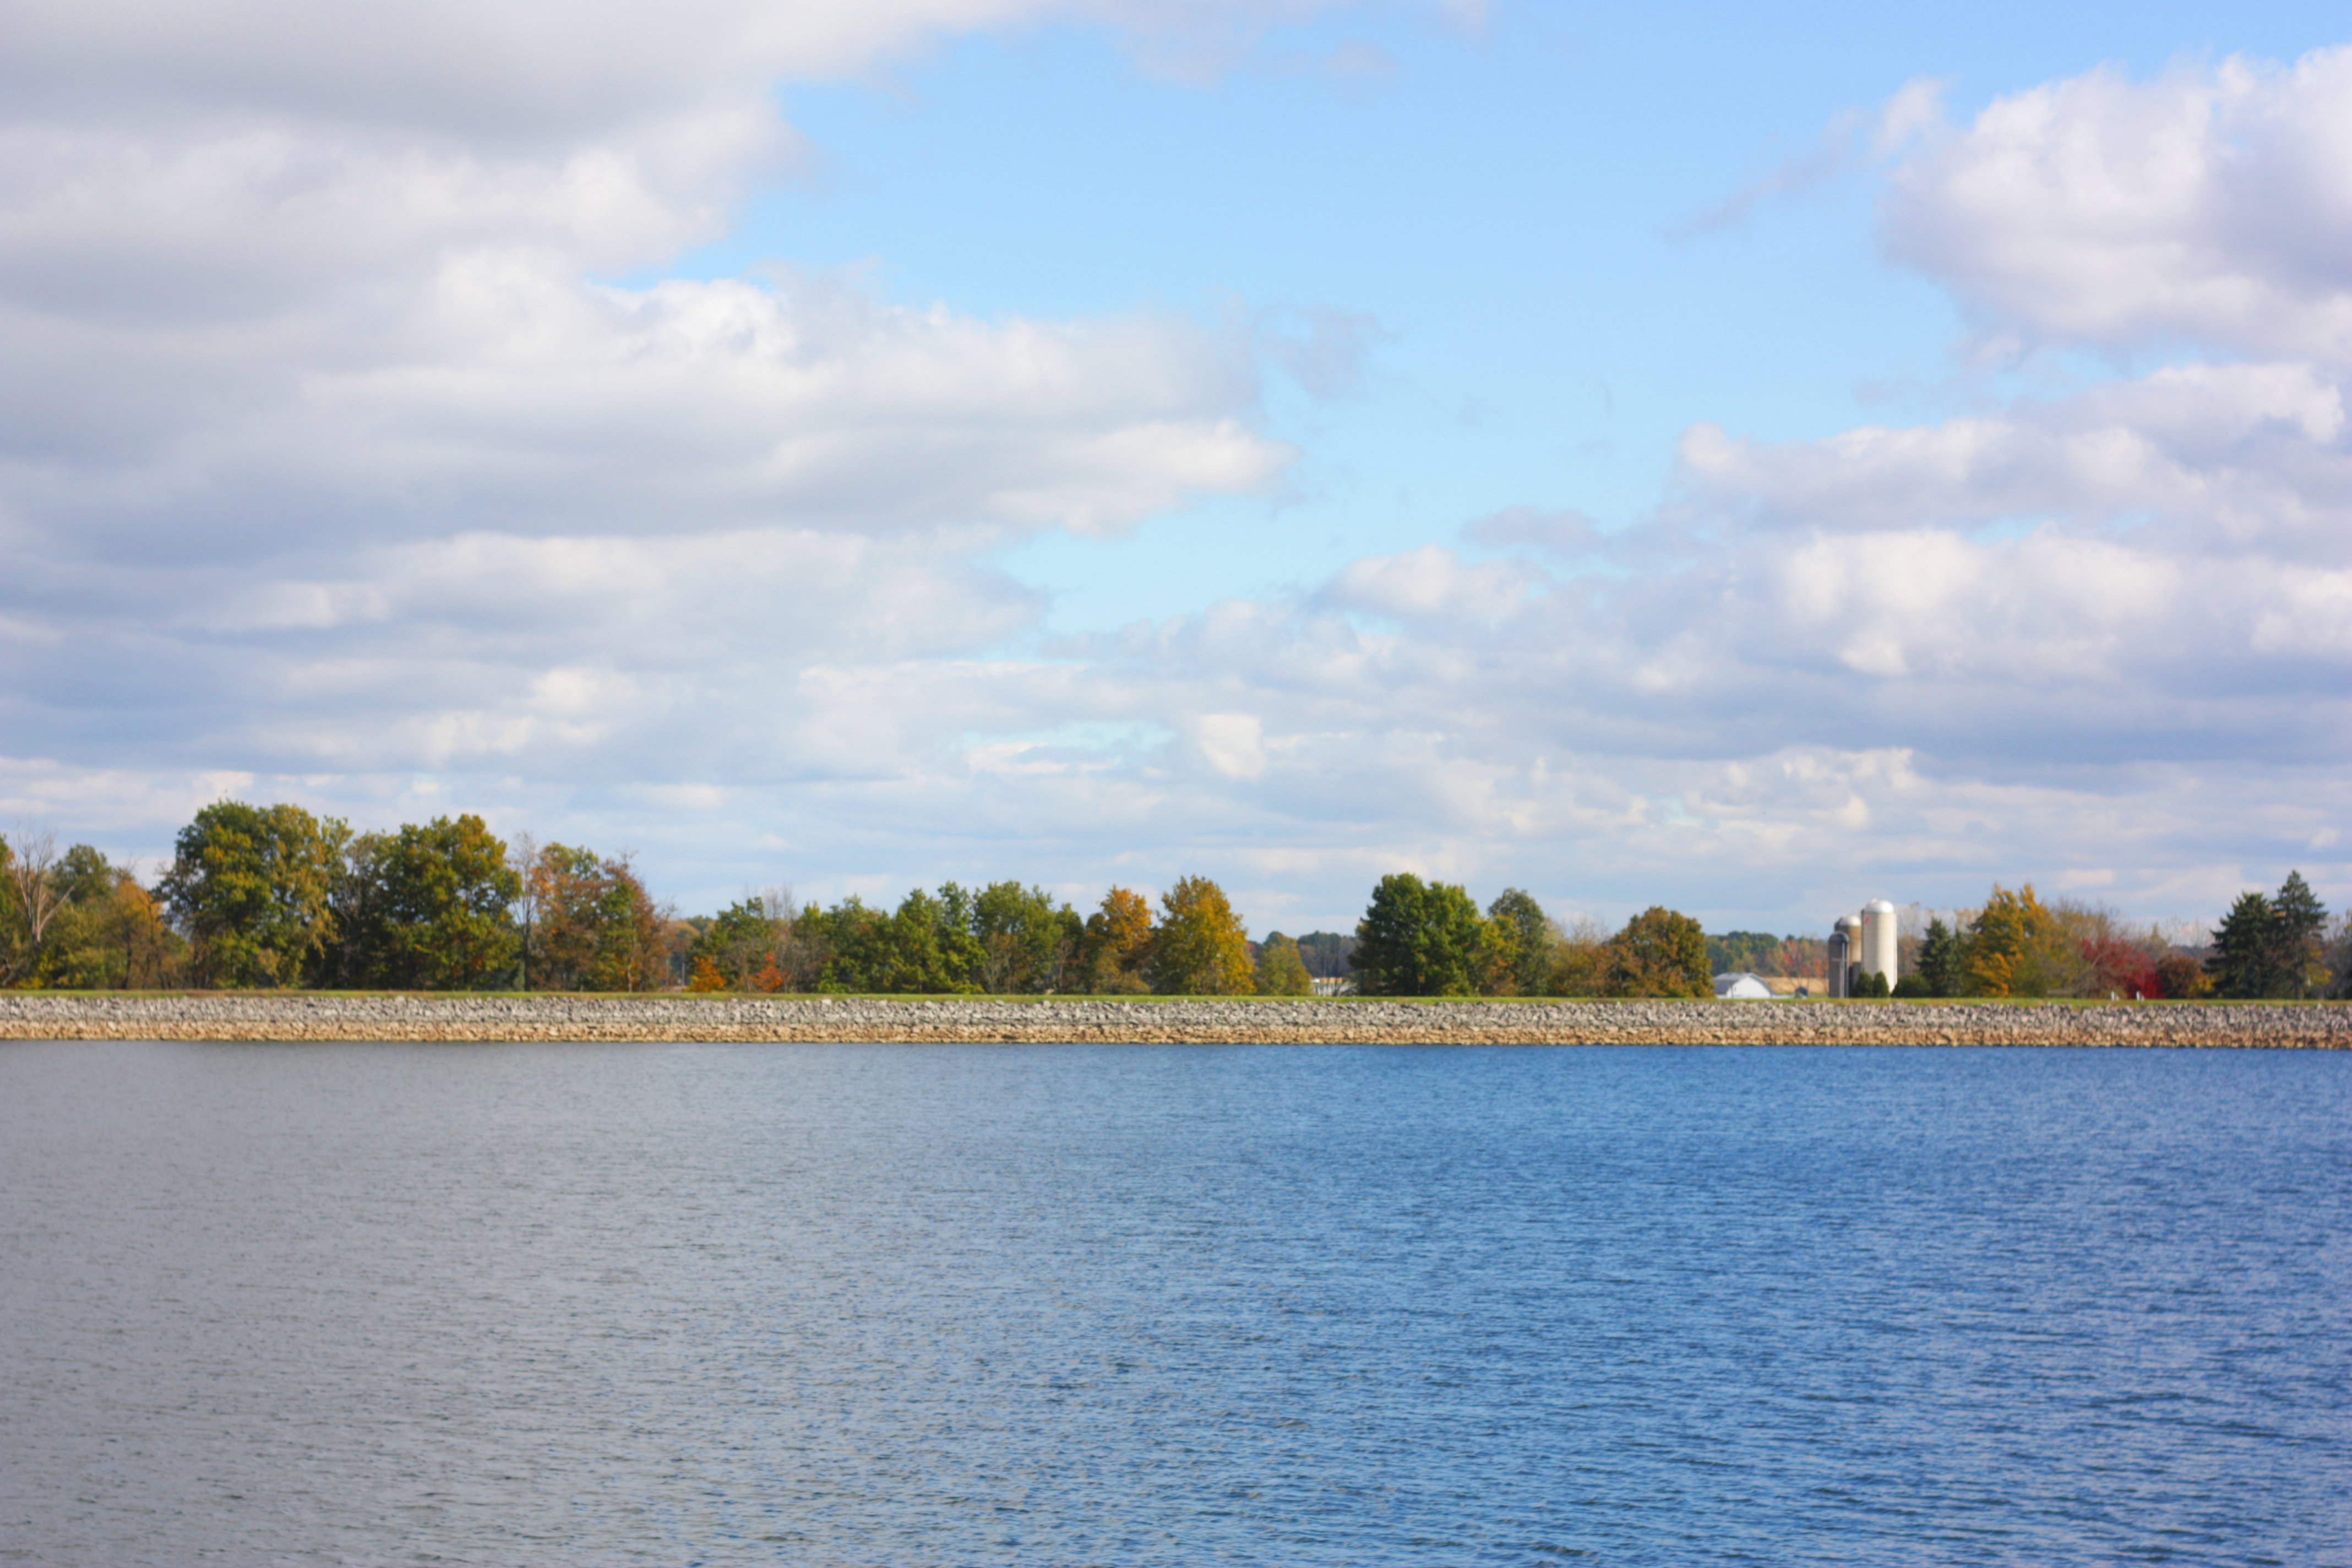 Blue lake with fall trees and a farm in the distance